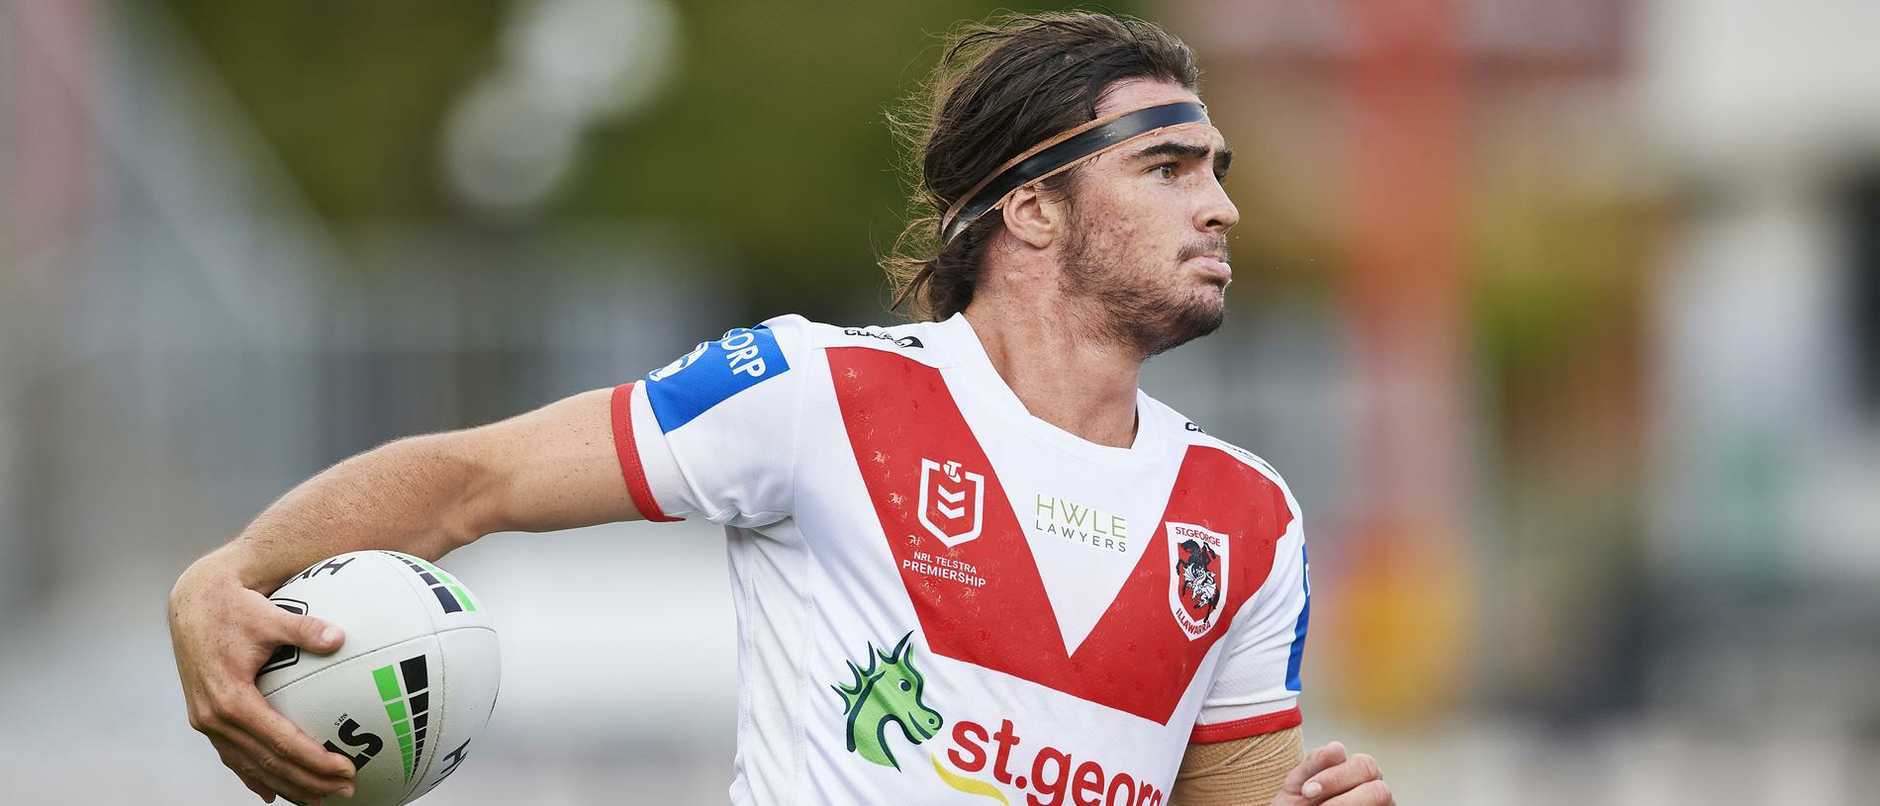 Cody Ramsey could be set for a shock positional switch after inking a bumper new deal with the Dragons — find out more about the Molong Marvel.